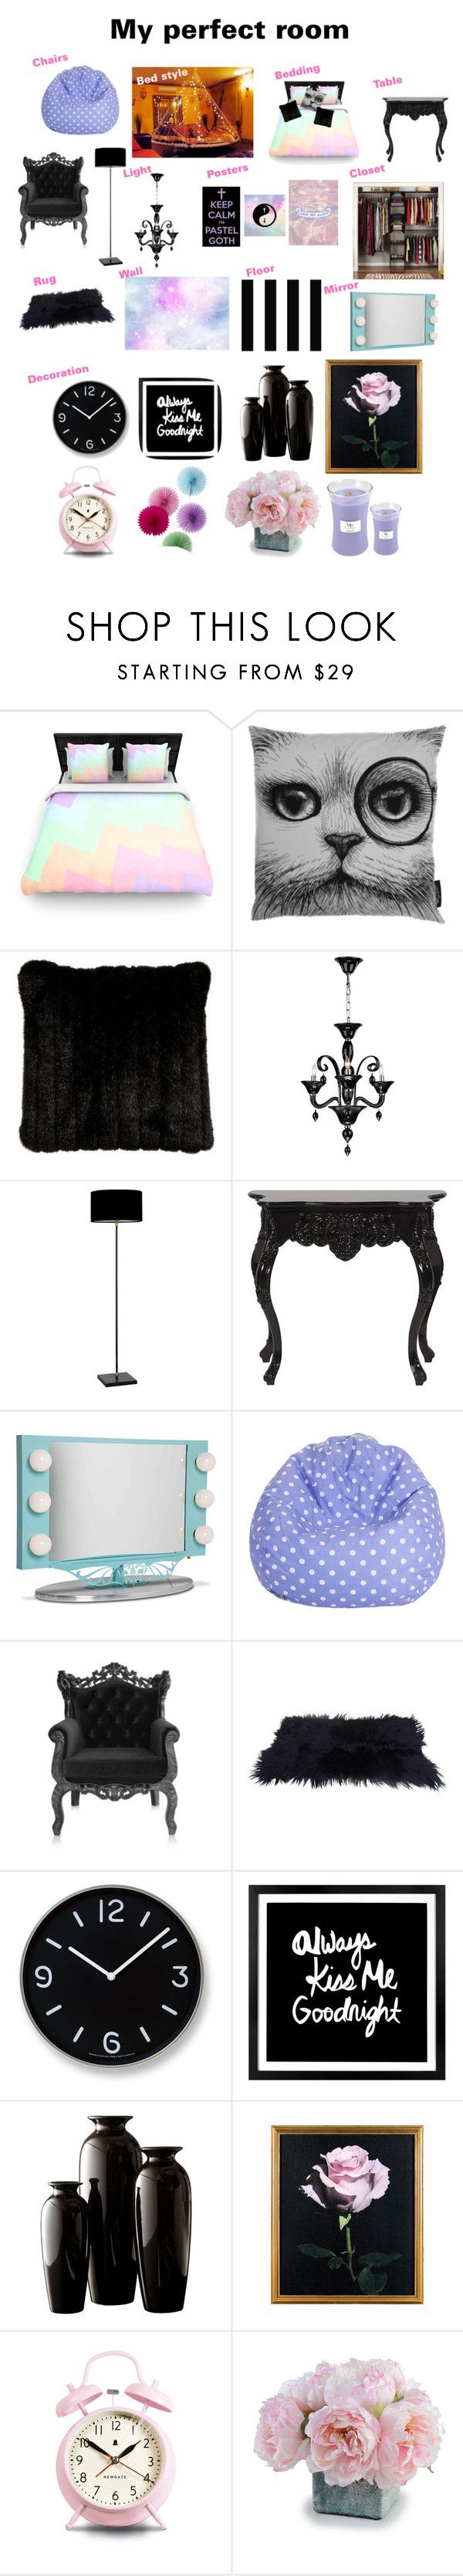 """""""Pastel goth bedroom"""" by neon-life ❤ liked on Polyvore featuring interior, interiors, interior design, home, home decor, interior decorating, Kess InHouse, Rory Dobner, Ethan Allen and Marimekko"""